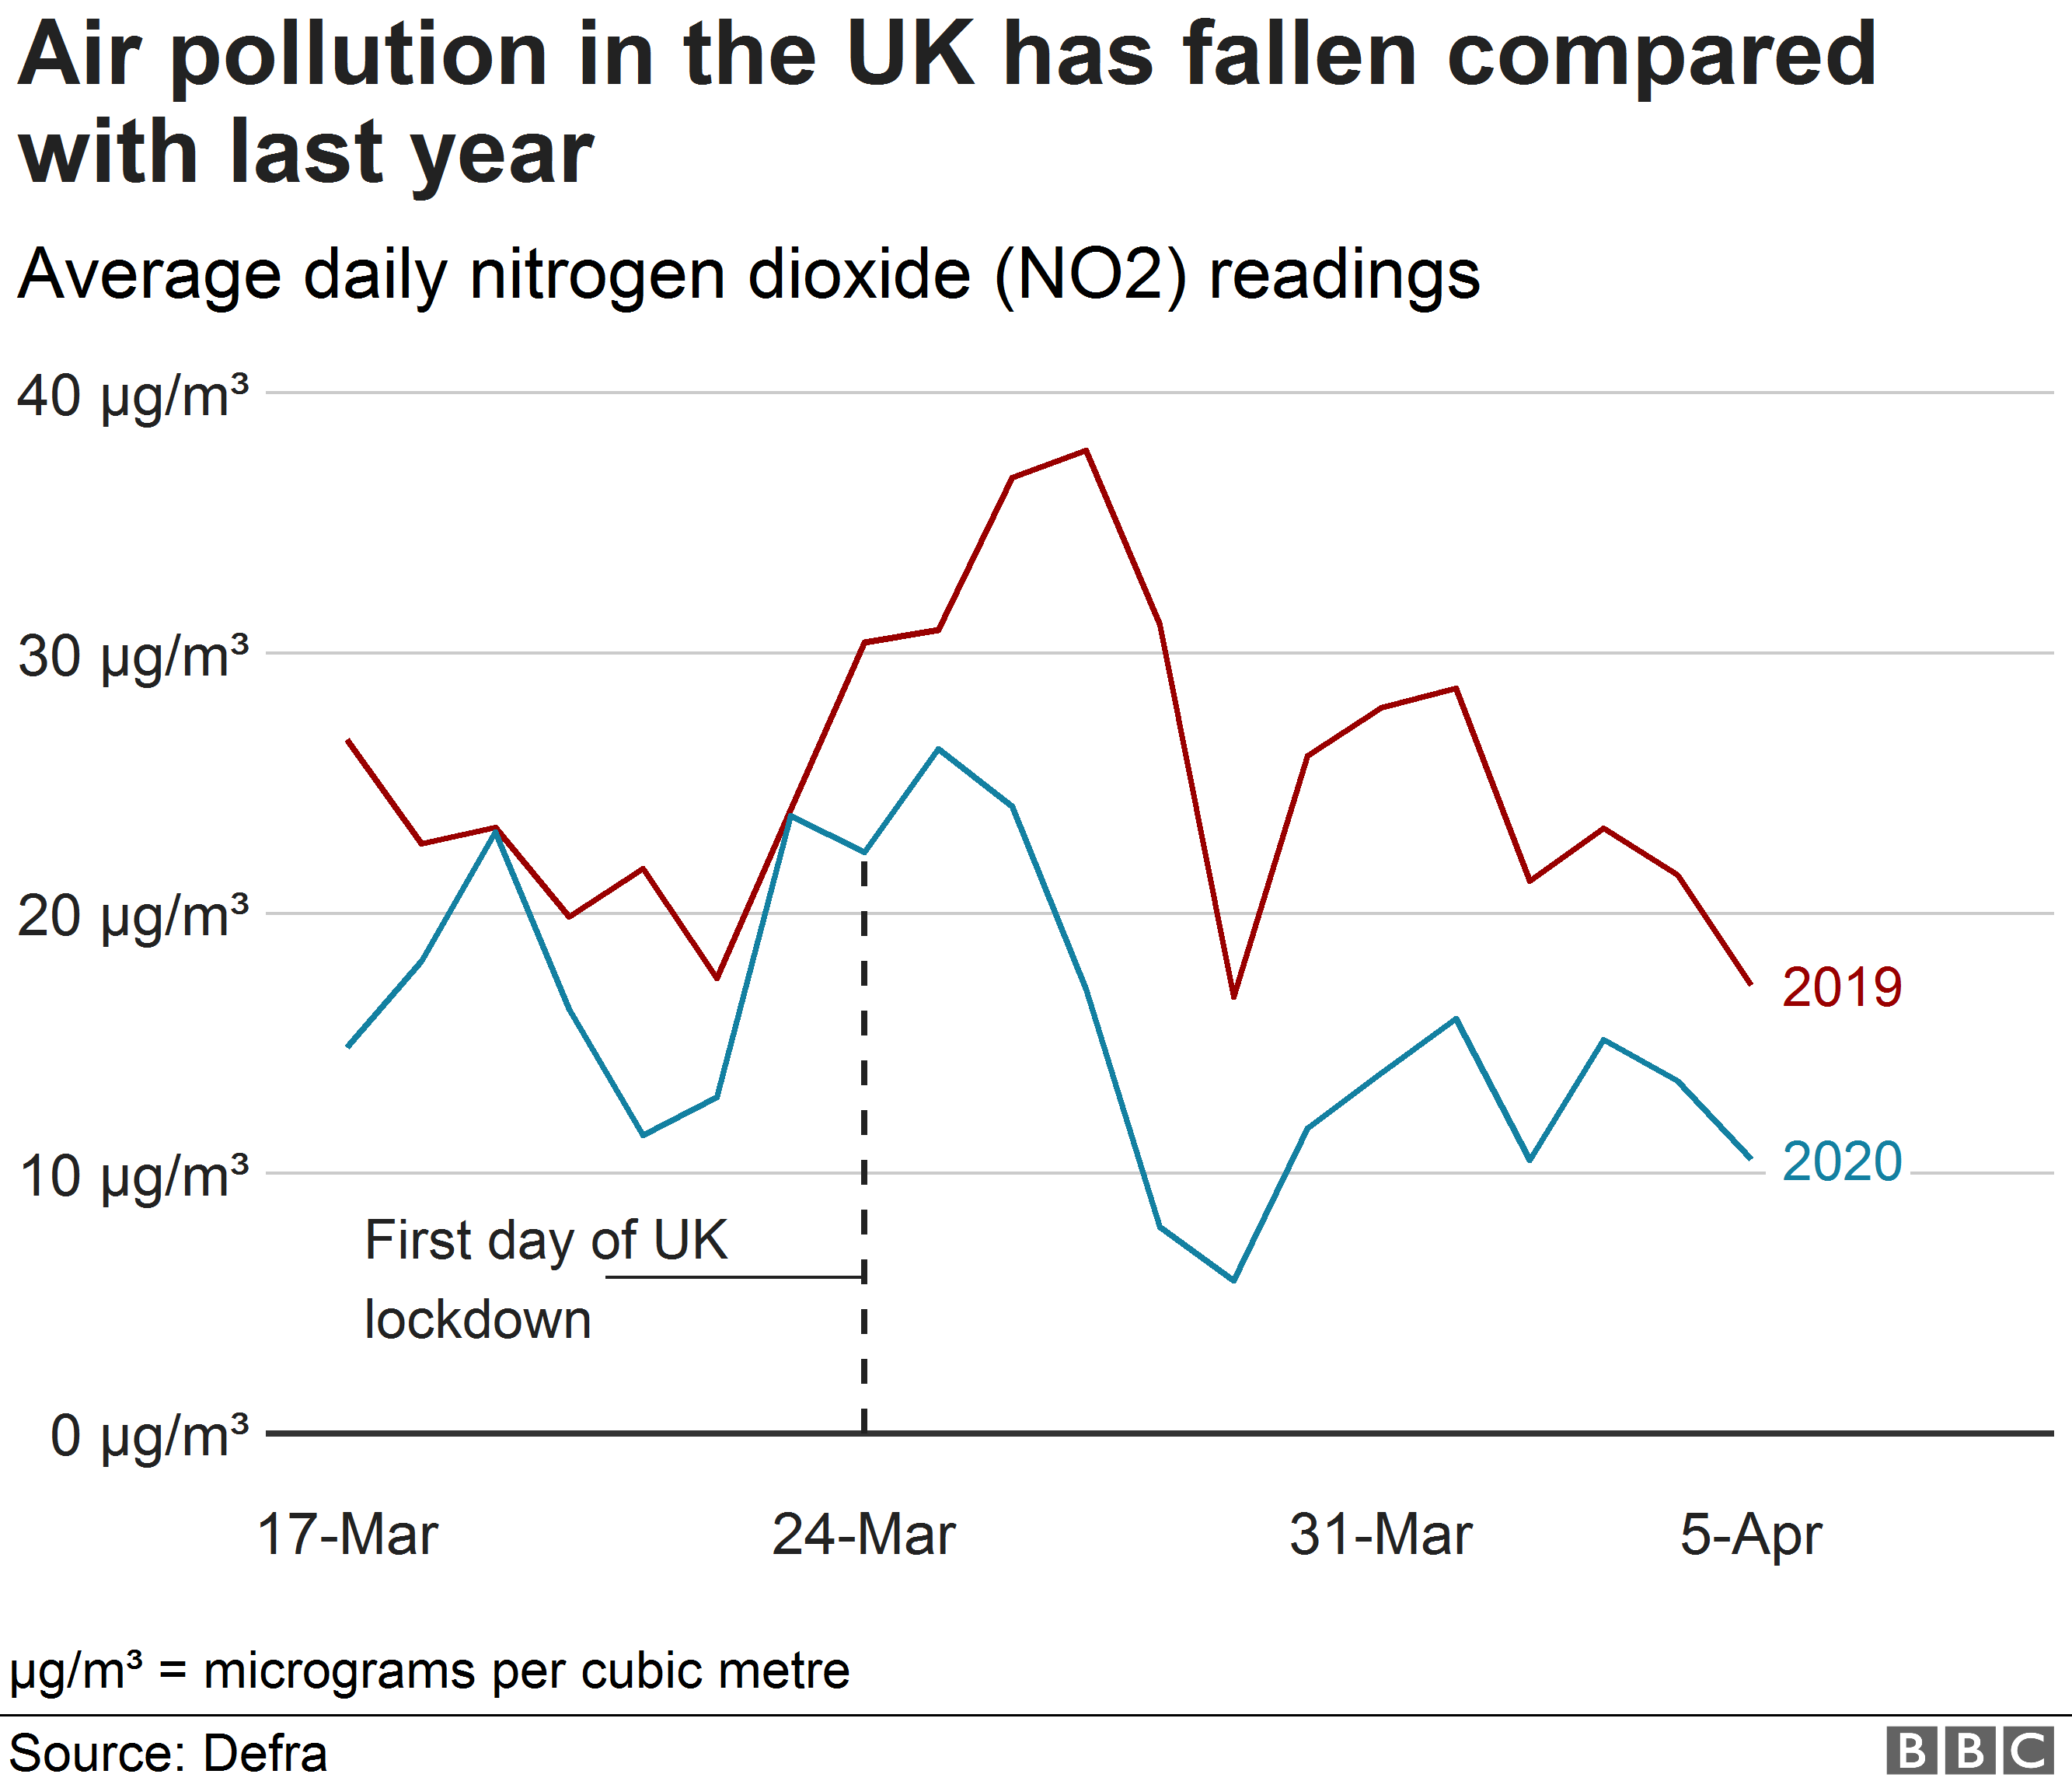 Chart showing the fall in average daily NO2 readings